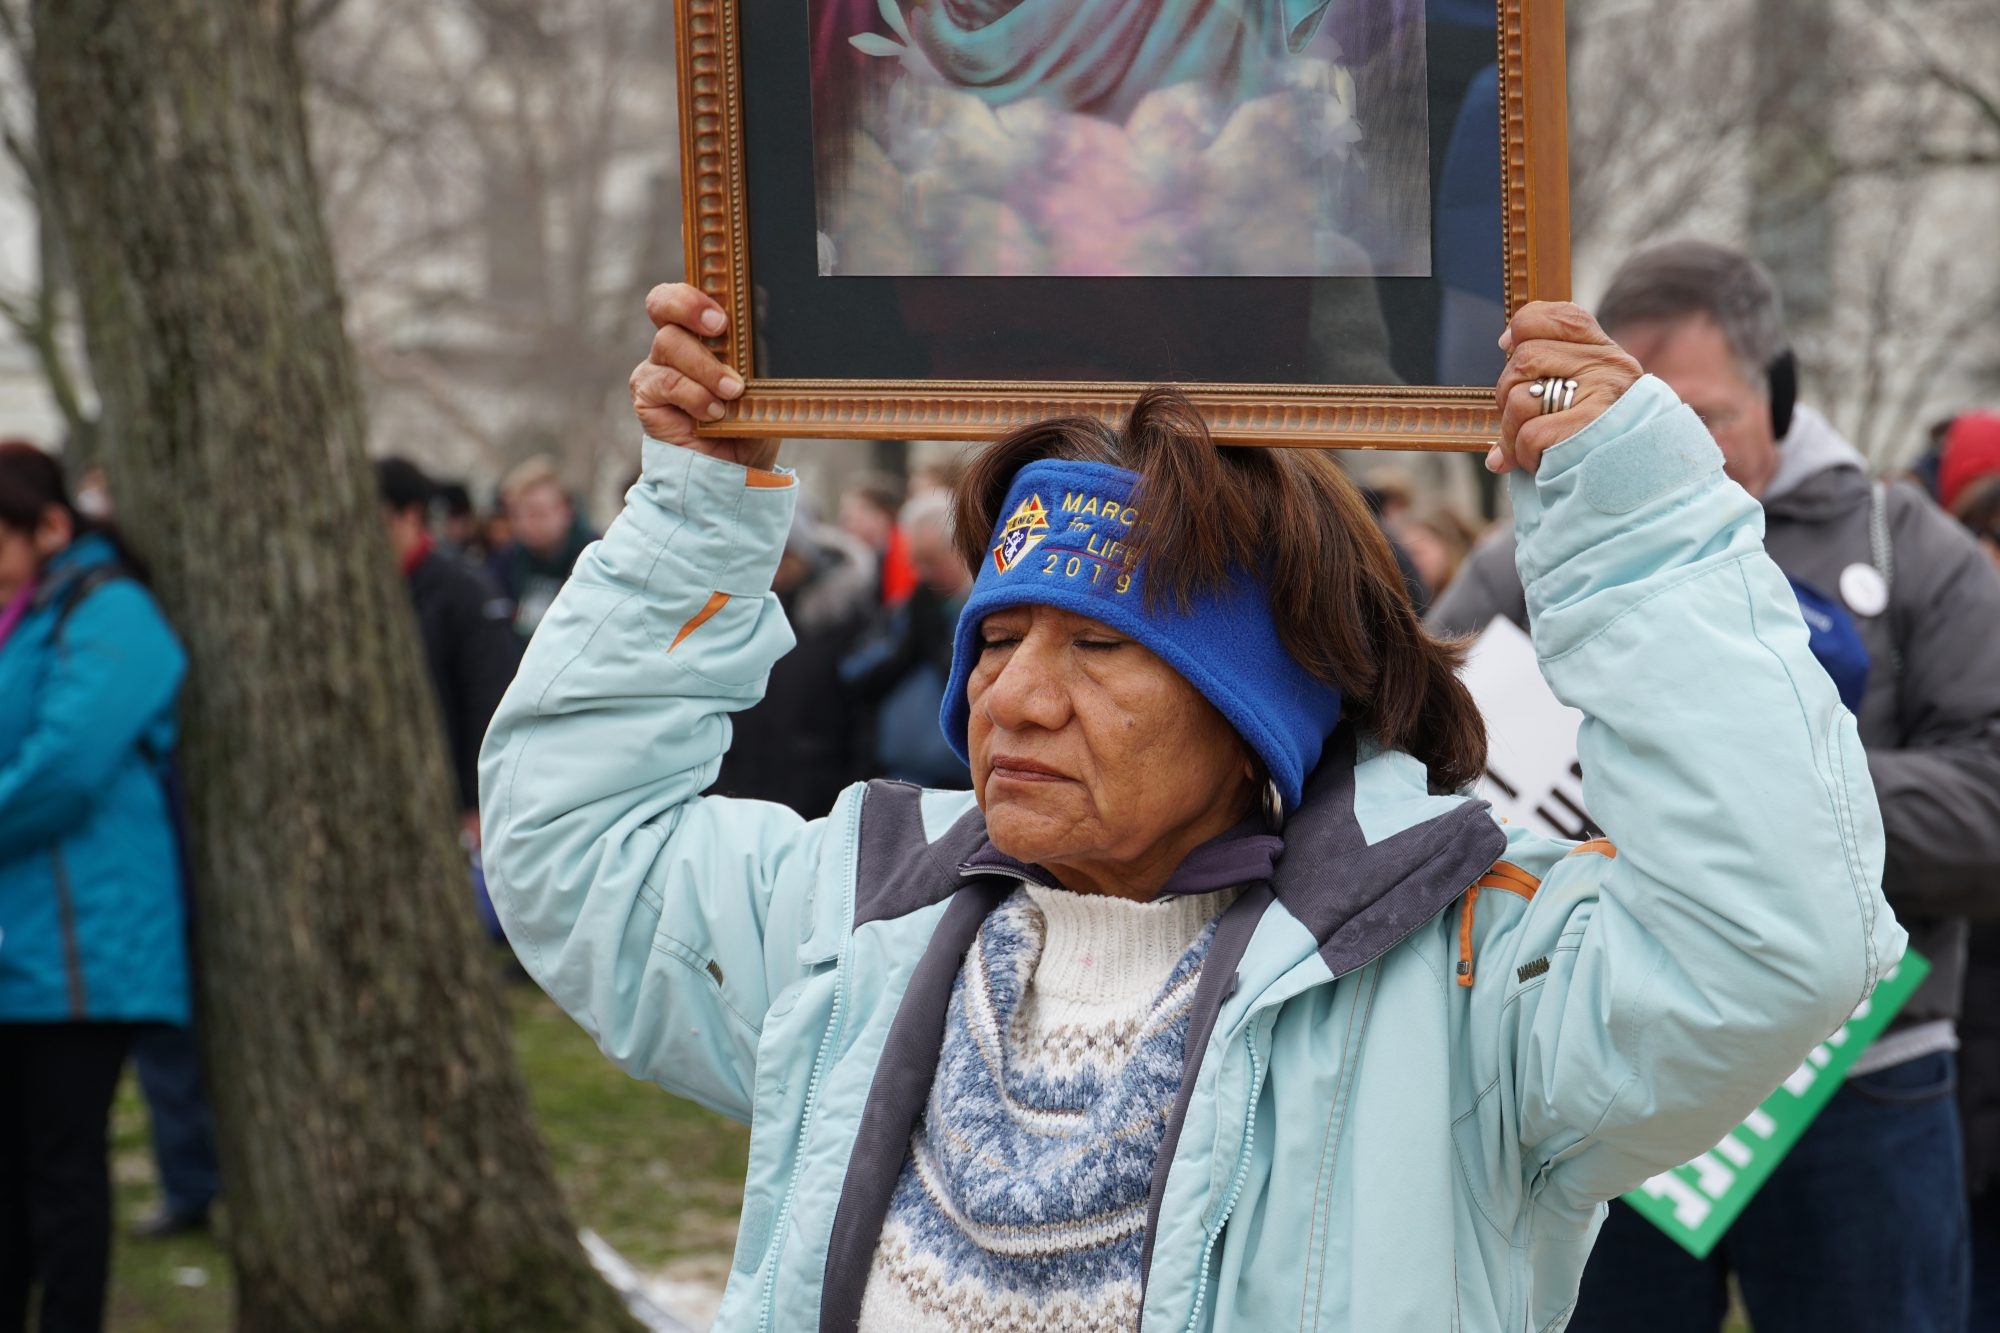 A woman holds up an image of Jesus during the prayer. (Ester Wells/MNS)